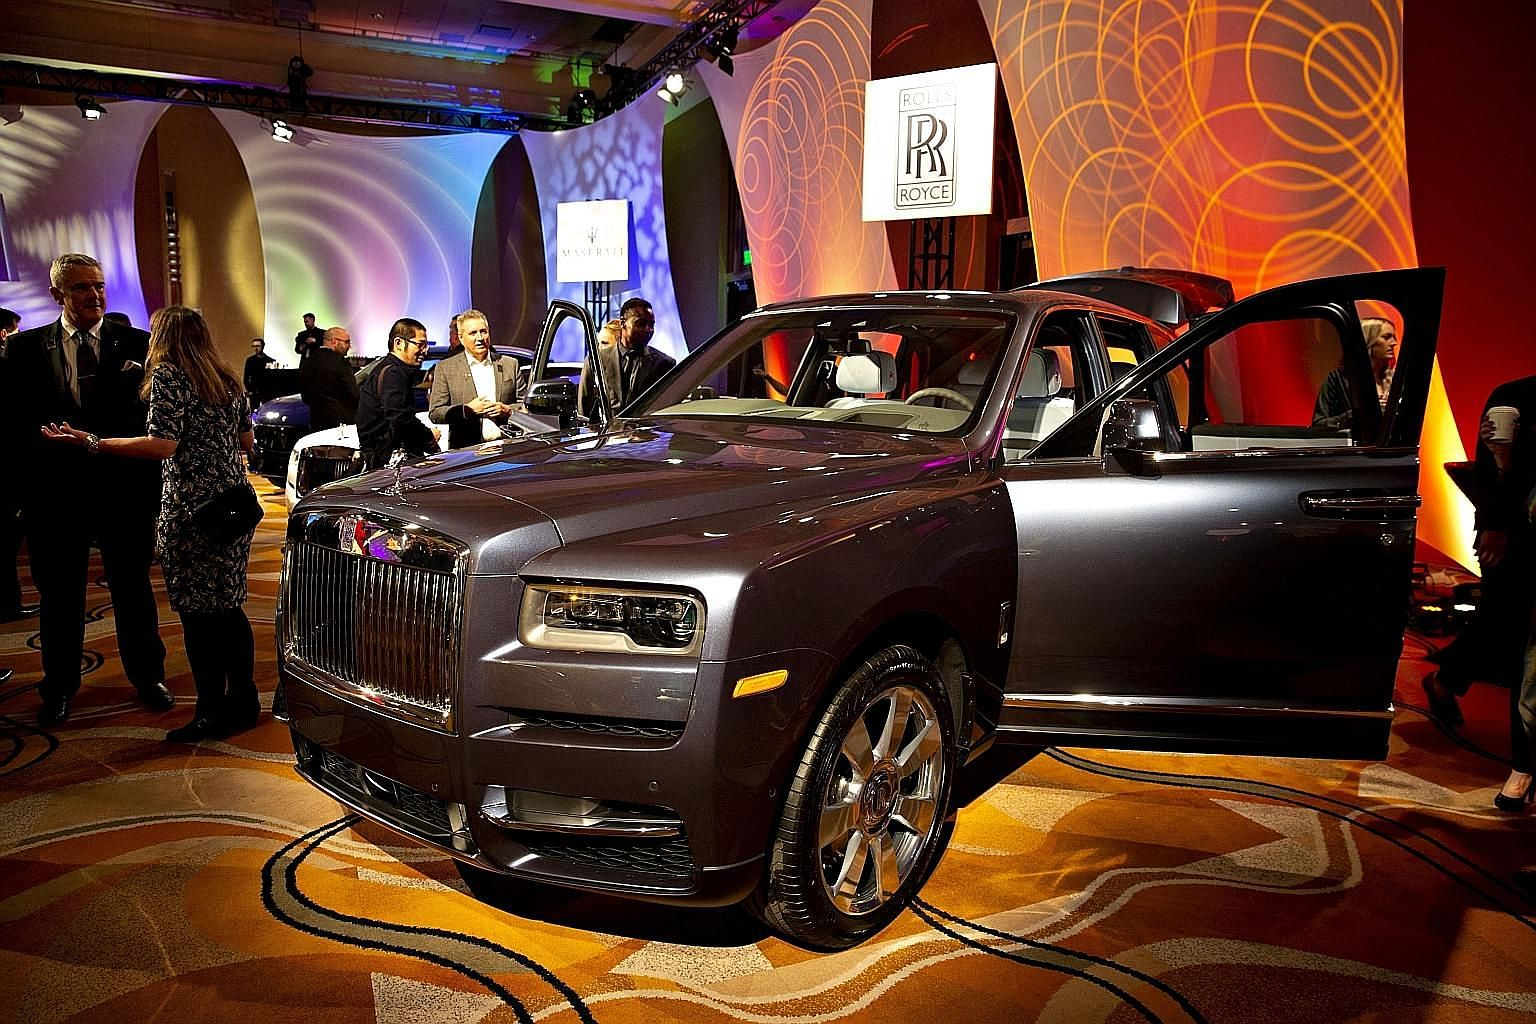 The Rolls-Royce Cullinan sport utility vehicle (SUV) was designed with extra amenities that begto be customised: rear work stations trimmed in exotic wood, deep-pile cashmere carpeting, and spots forChampagne coolers,picnic baskets and cigar hu